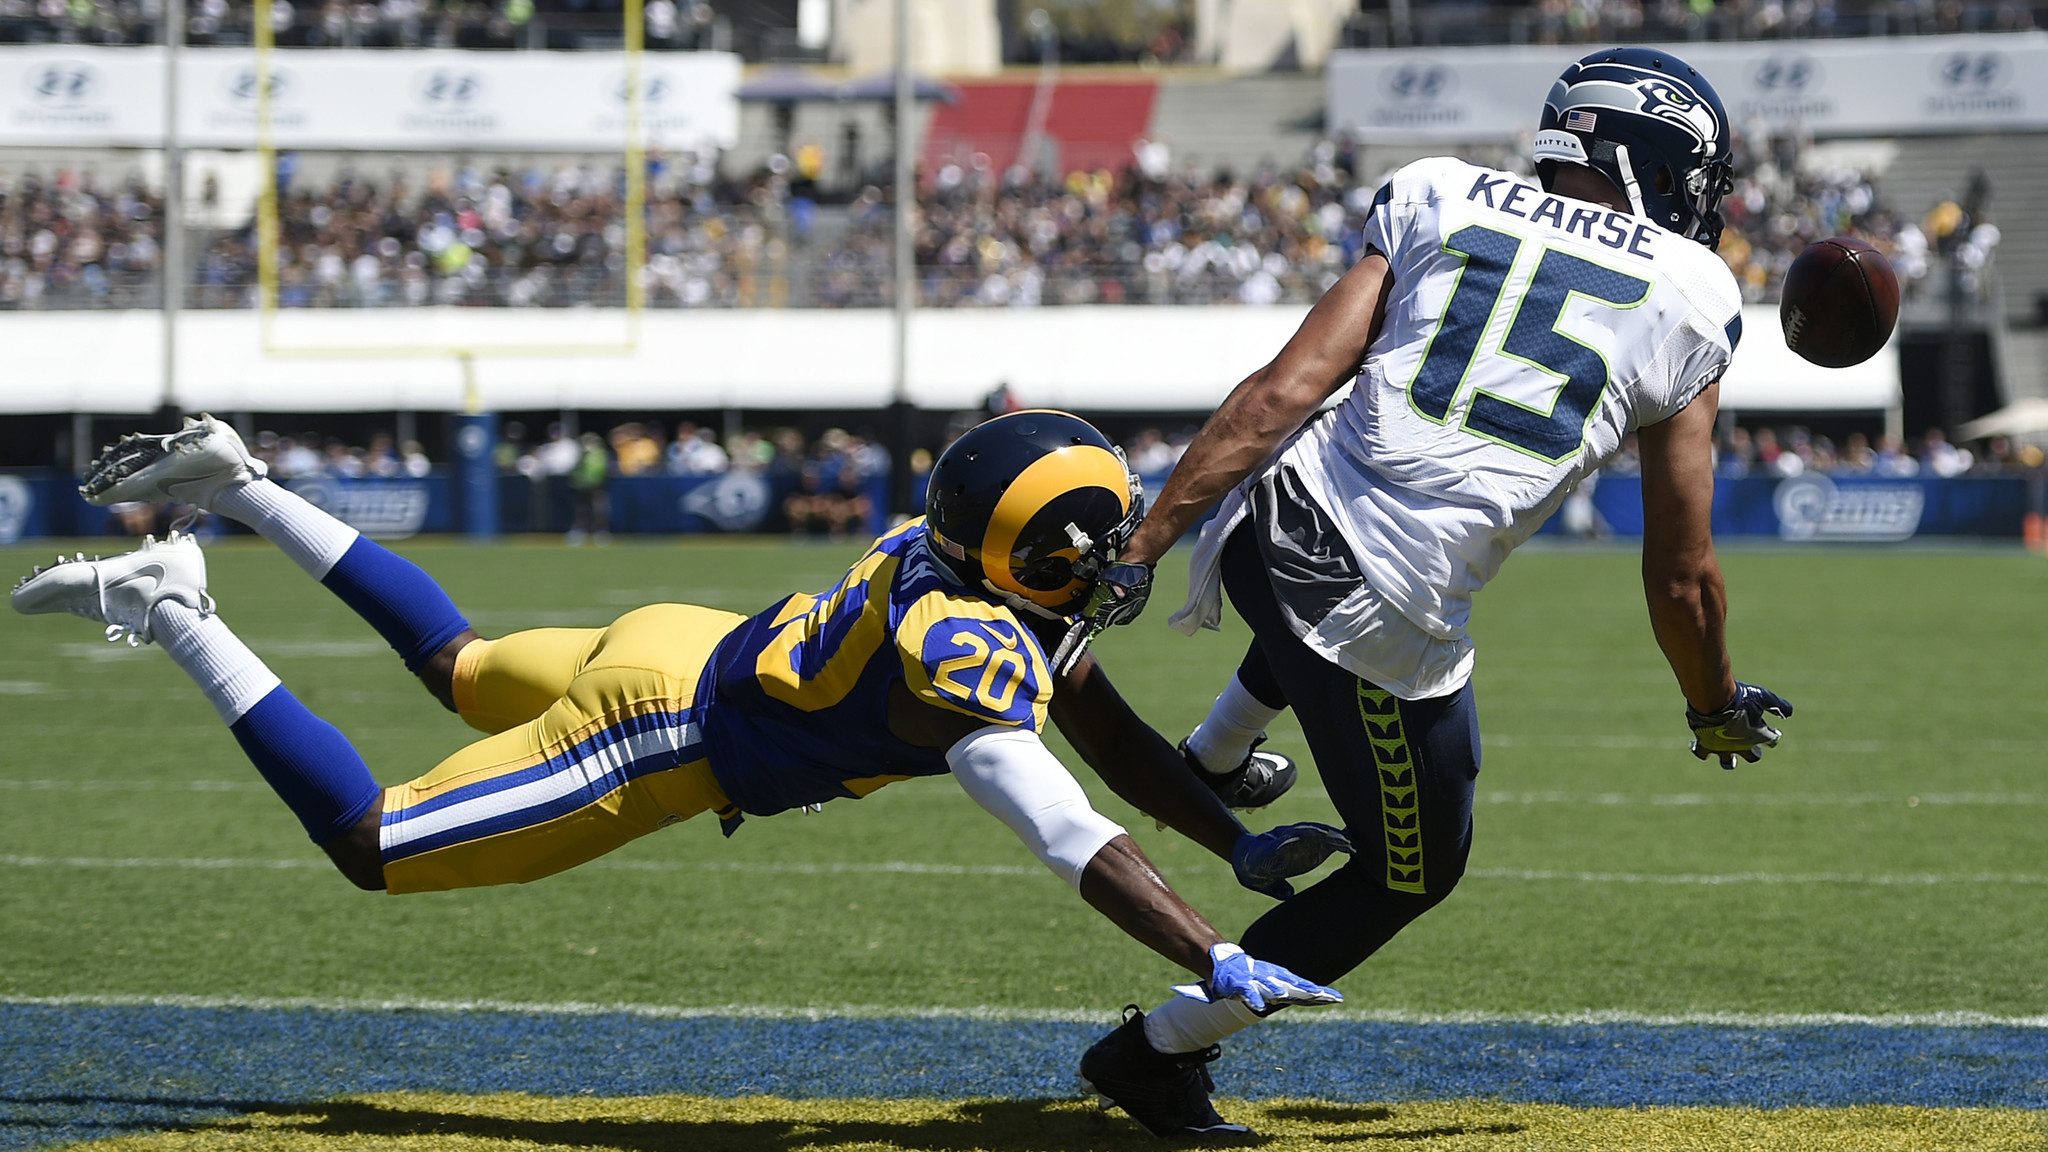 Rams cornerback Lamarcus Joyner prevents a reception by the Seahawks' Jermaine Kearse in the end zone at the Coliseum on Sept. 18. (Kelvin Kuo / Associated Press)